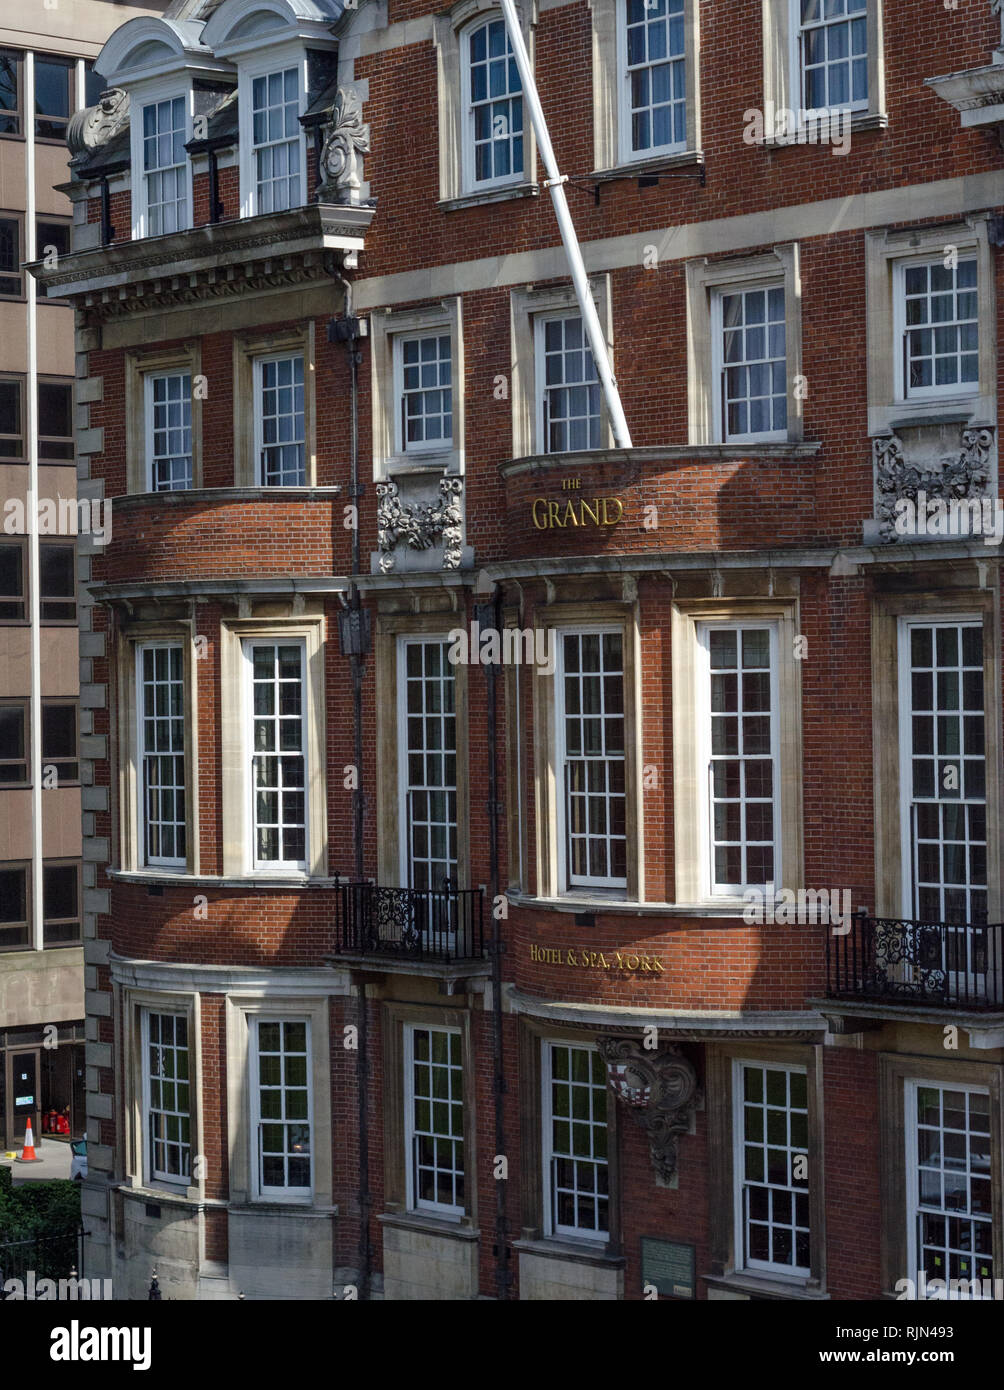 The Grand Hotel and Spa is just inside the city walls of York, England. - Stock Image